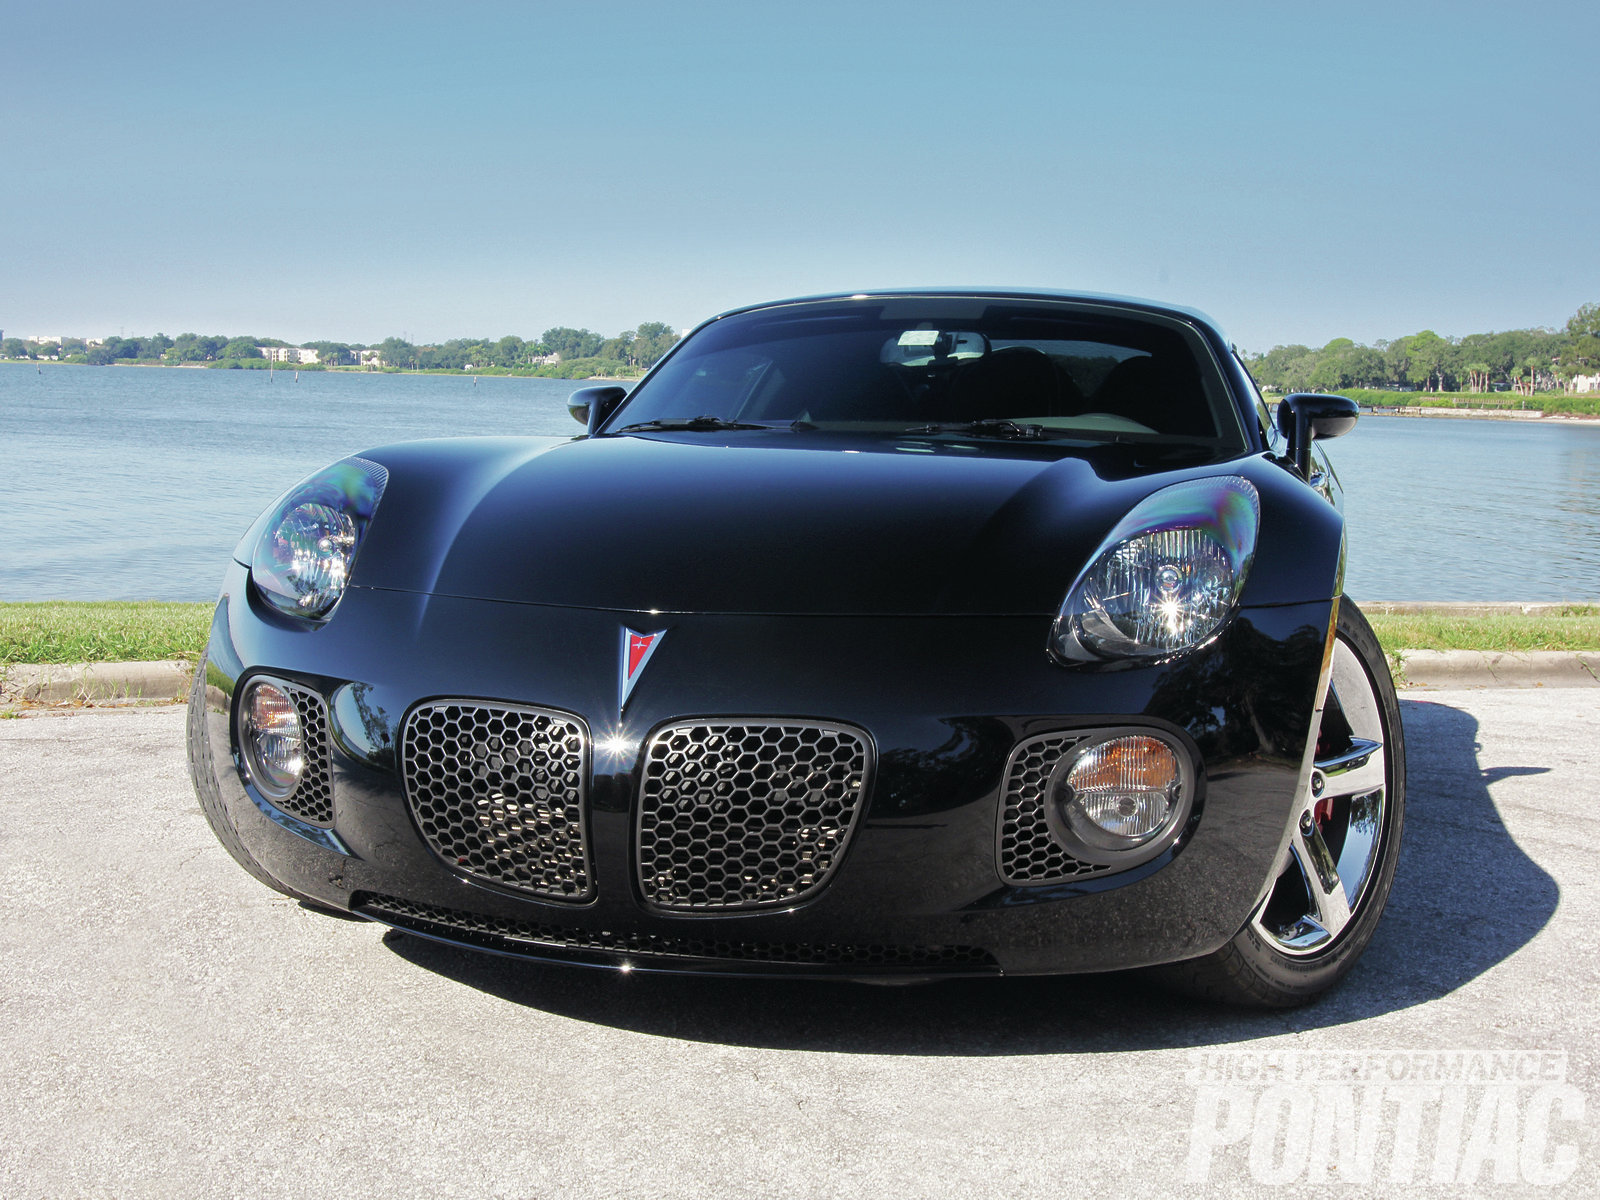 """The clean lines of the Solstice are thoroughly modern, yet harken back to the great sports cars from the past and even to Pontiac's attempts to bring a two-seater to market in the '50s and '60s. You have to look, but there is a little XP-833 """"Banshee"""" in these vehicles, the coupe in particular."""